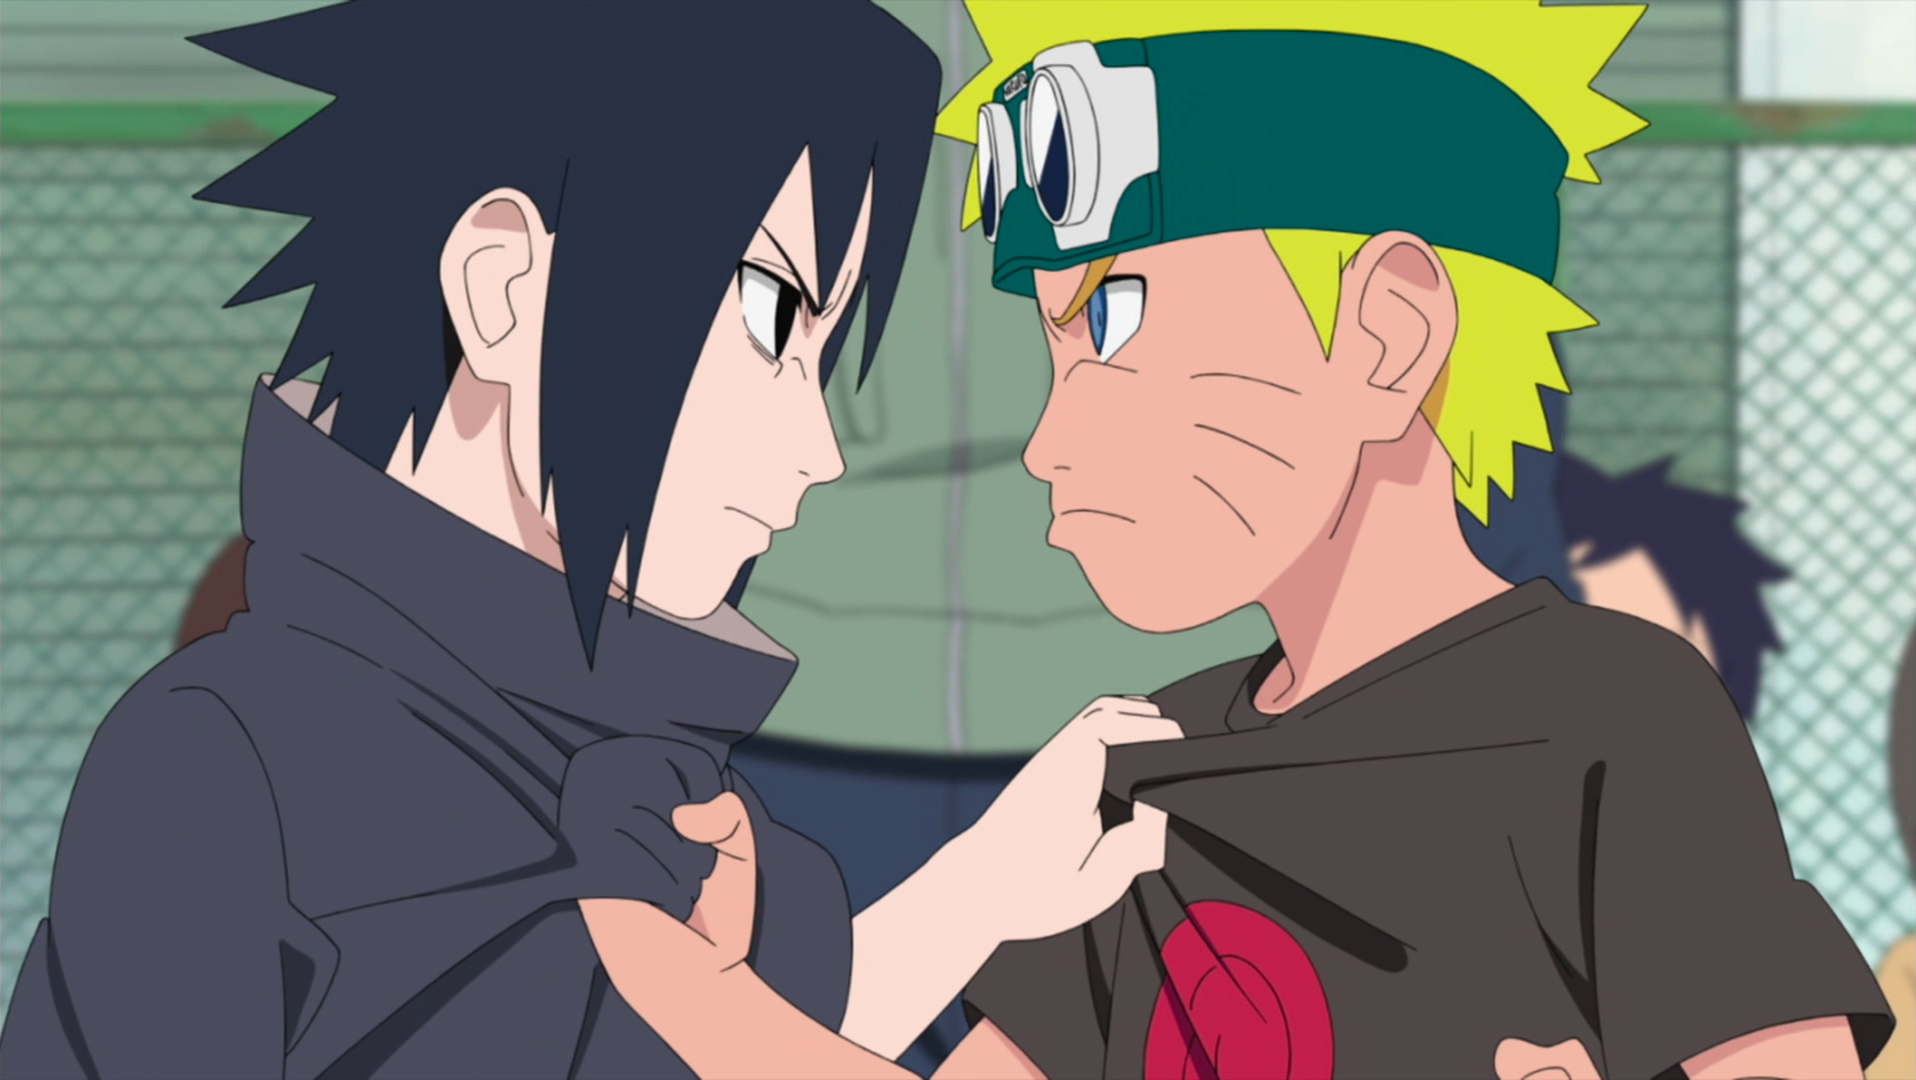 Young_sasuke_and_Naruto.png